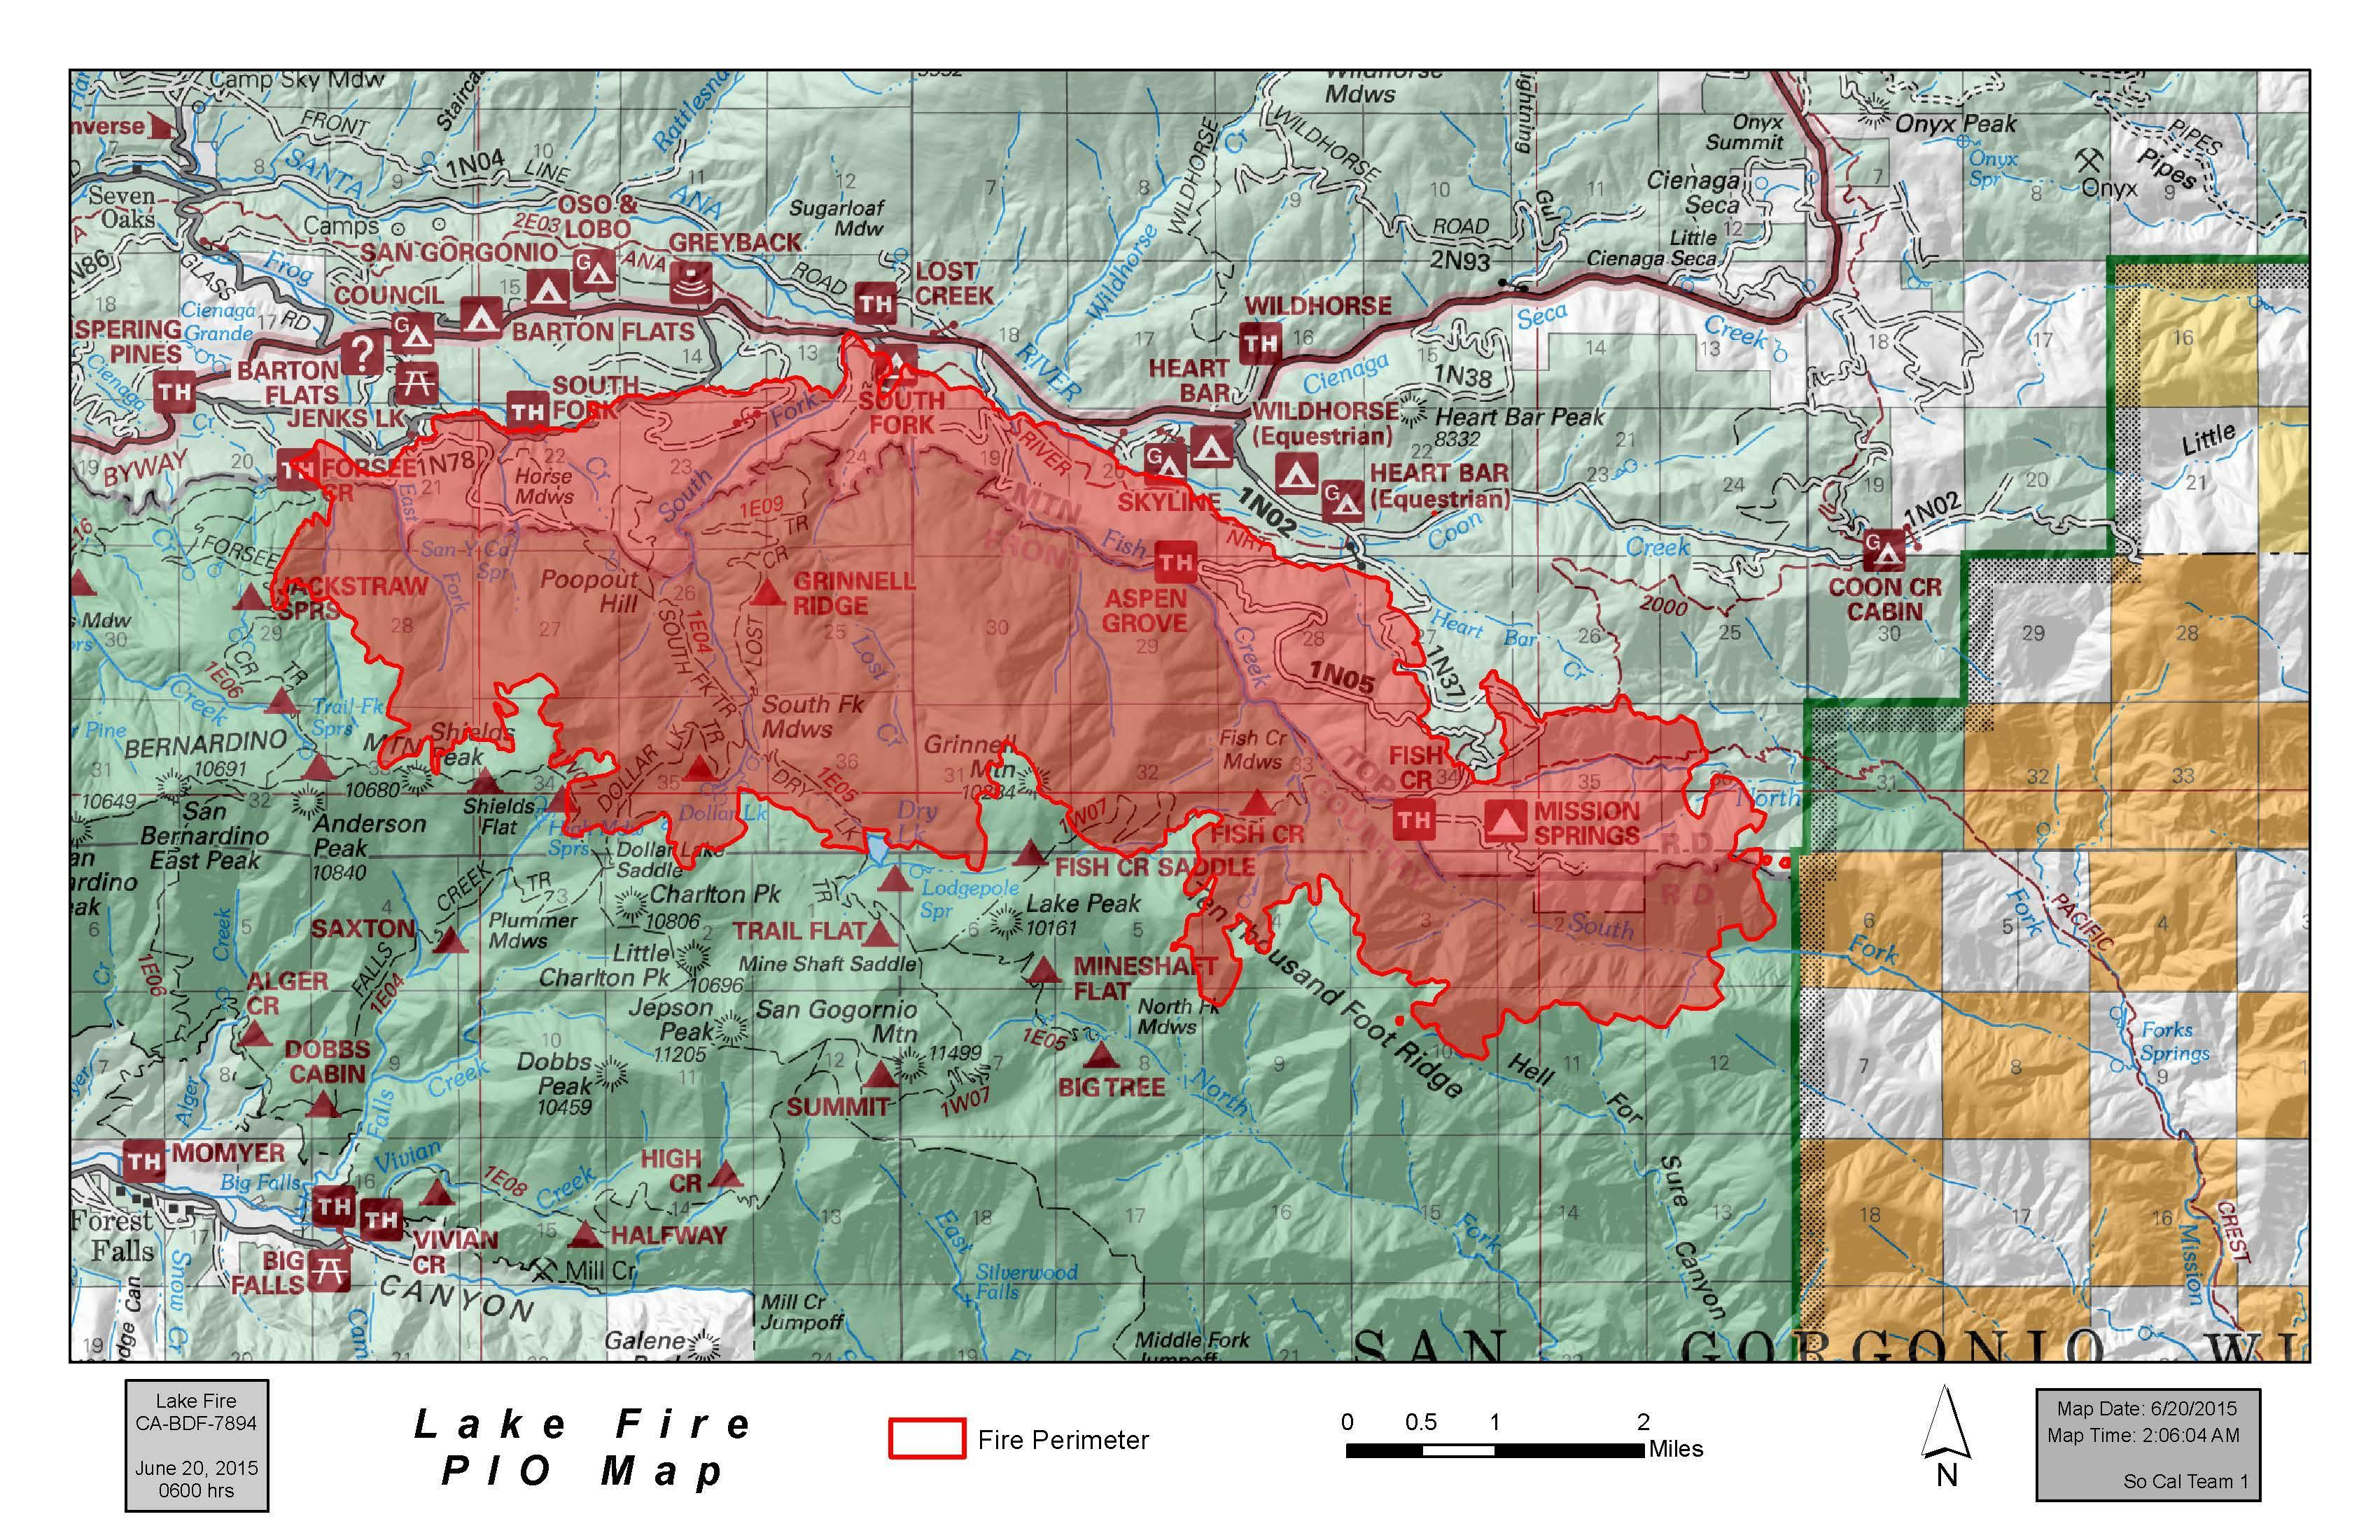 Big Bear Lake Fire Map.Socalmountains Com Forums Fire Discussion Lake Fire Big Bear